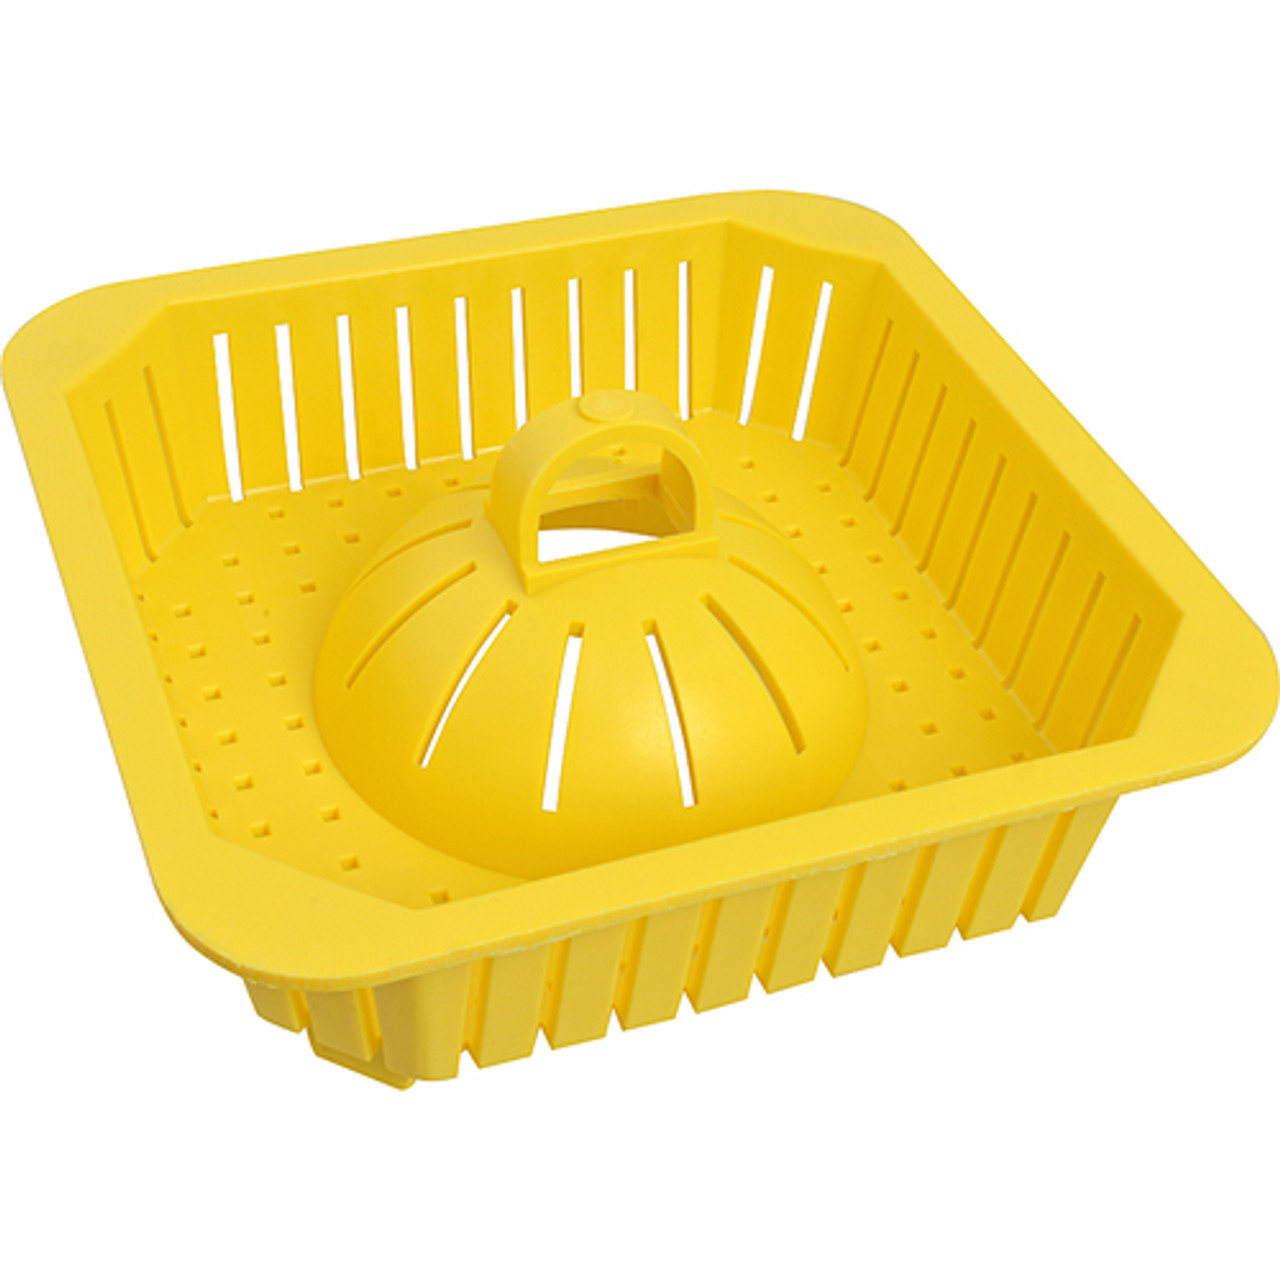 8.5 inch Domed Safety Basket